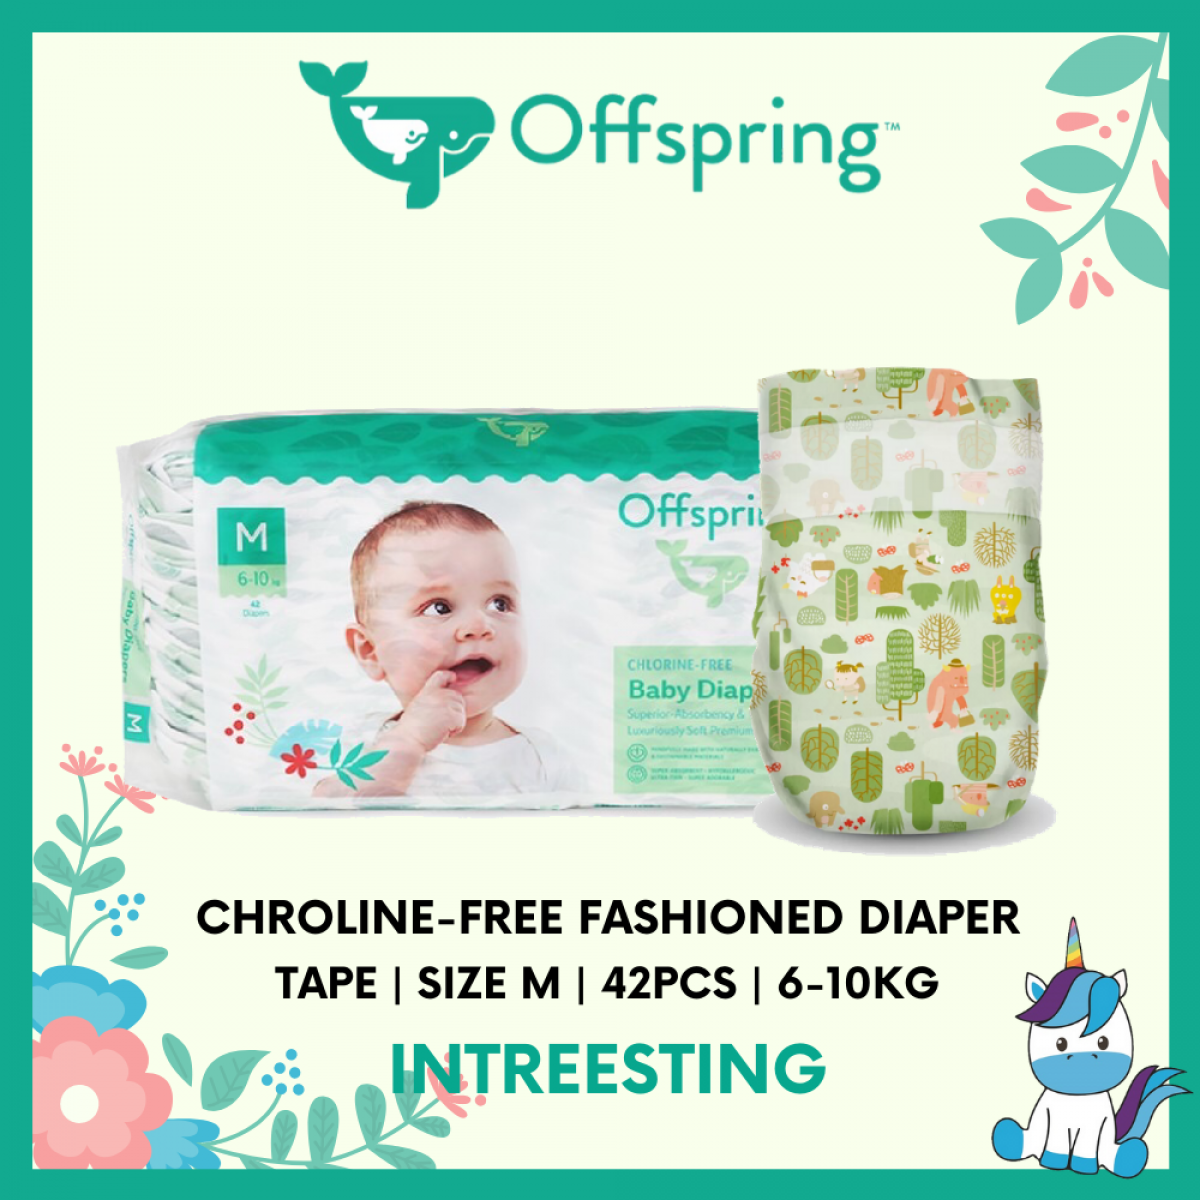 Offspring Chroline-Free Fashioned Tape Diaper M 42pcs - 9 Designs